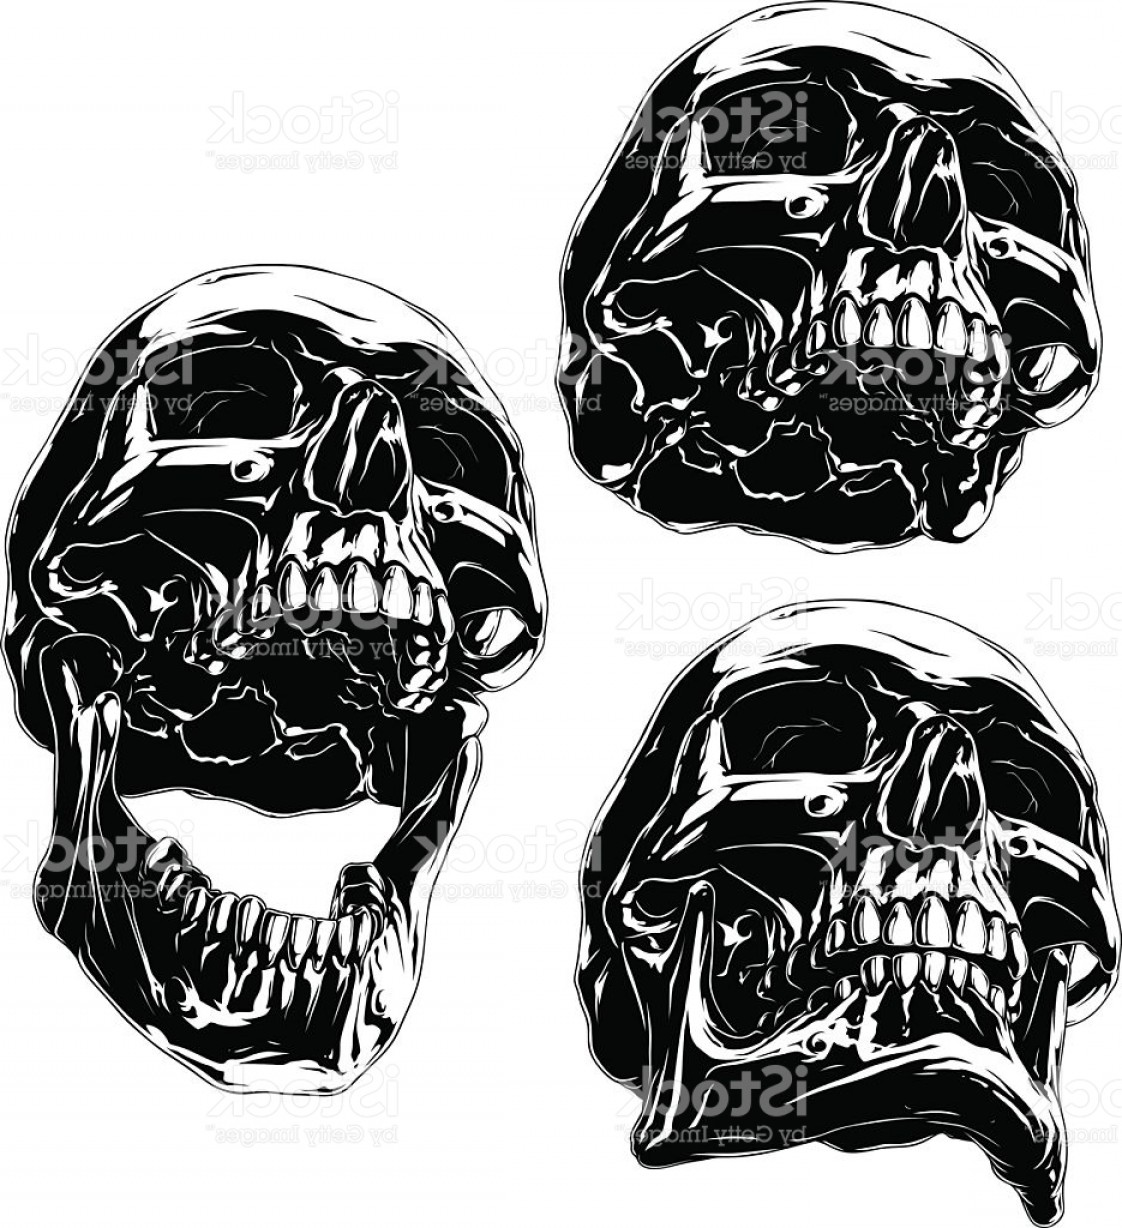 Cool Skull Vector: High Detailed Cool Black Human Skull Set Gm